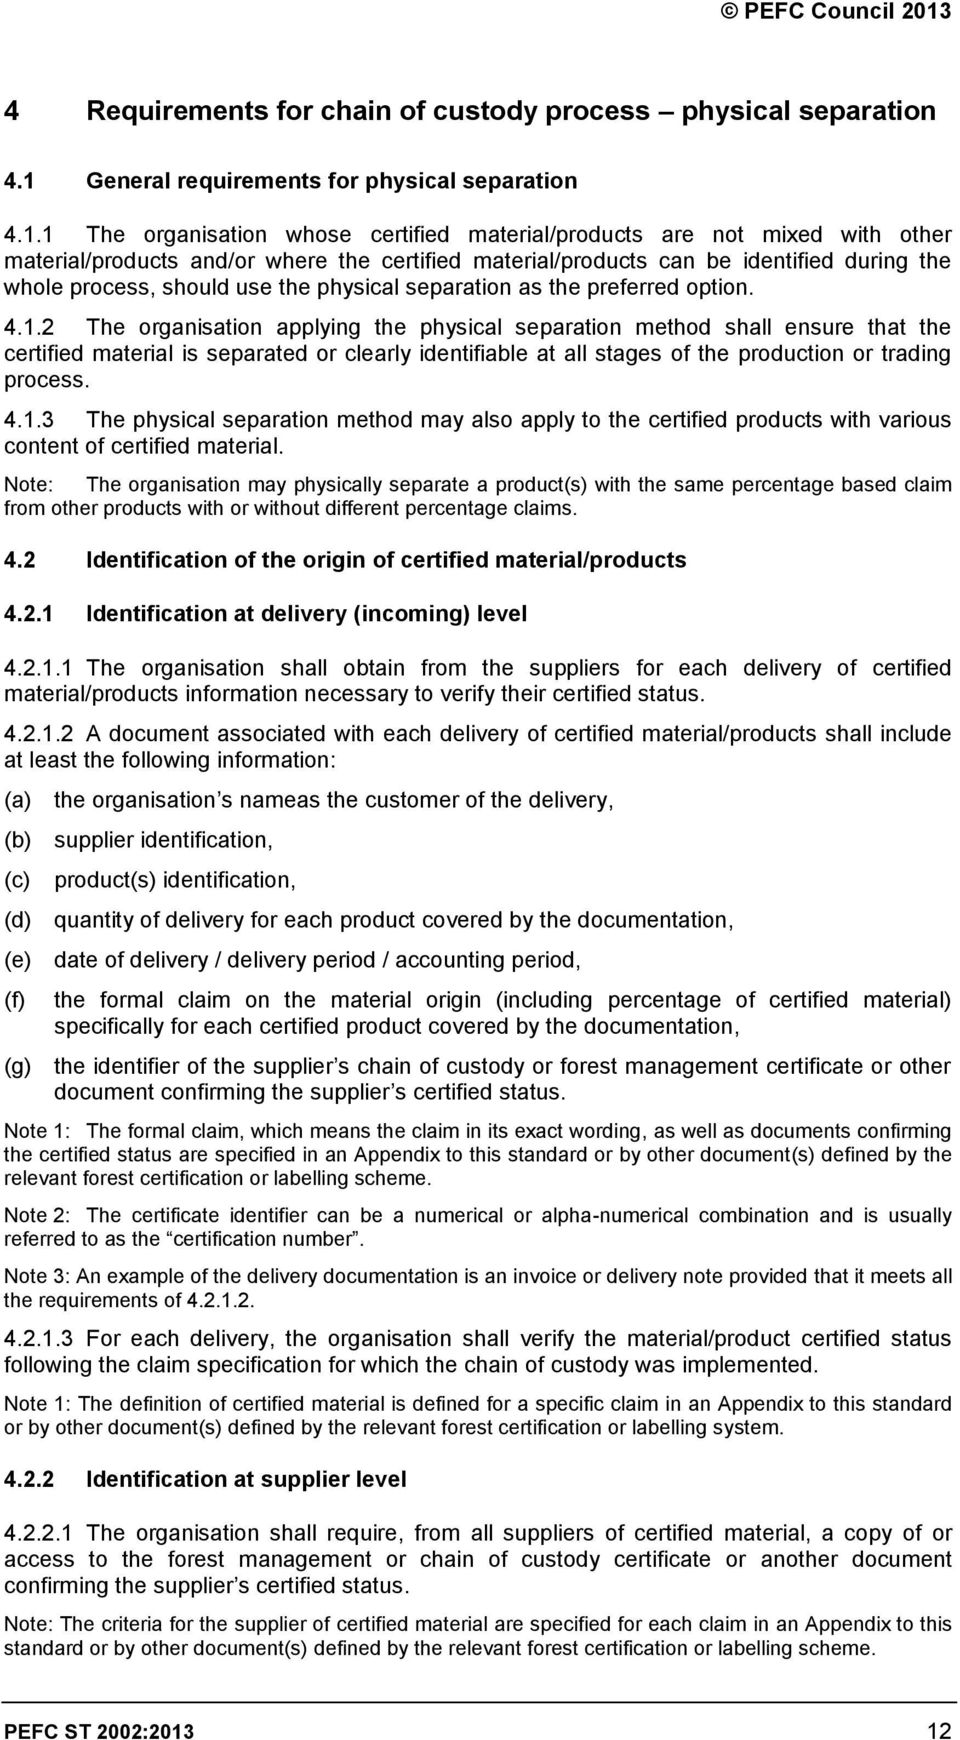 1 The organisation whose certified material/products are not mixed with other material/products and/or where the certified material/products can be identified during the whole process, should use the